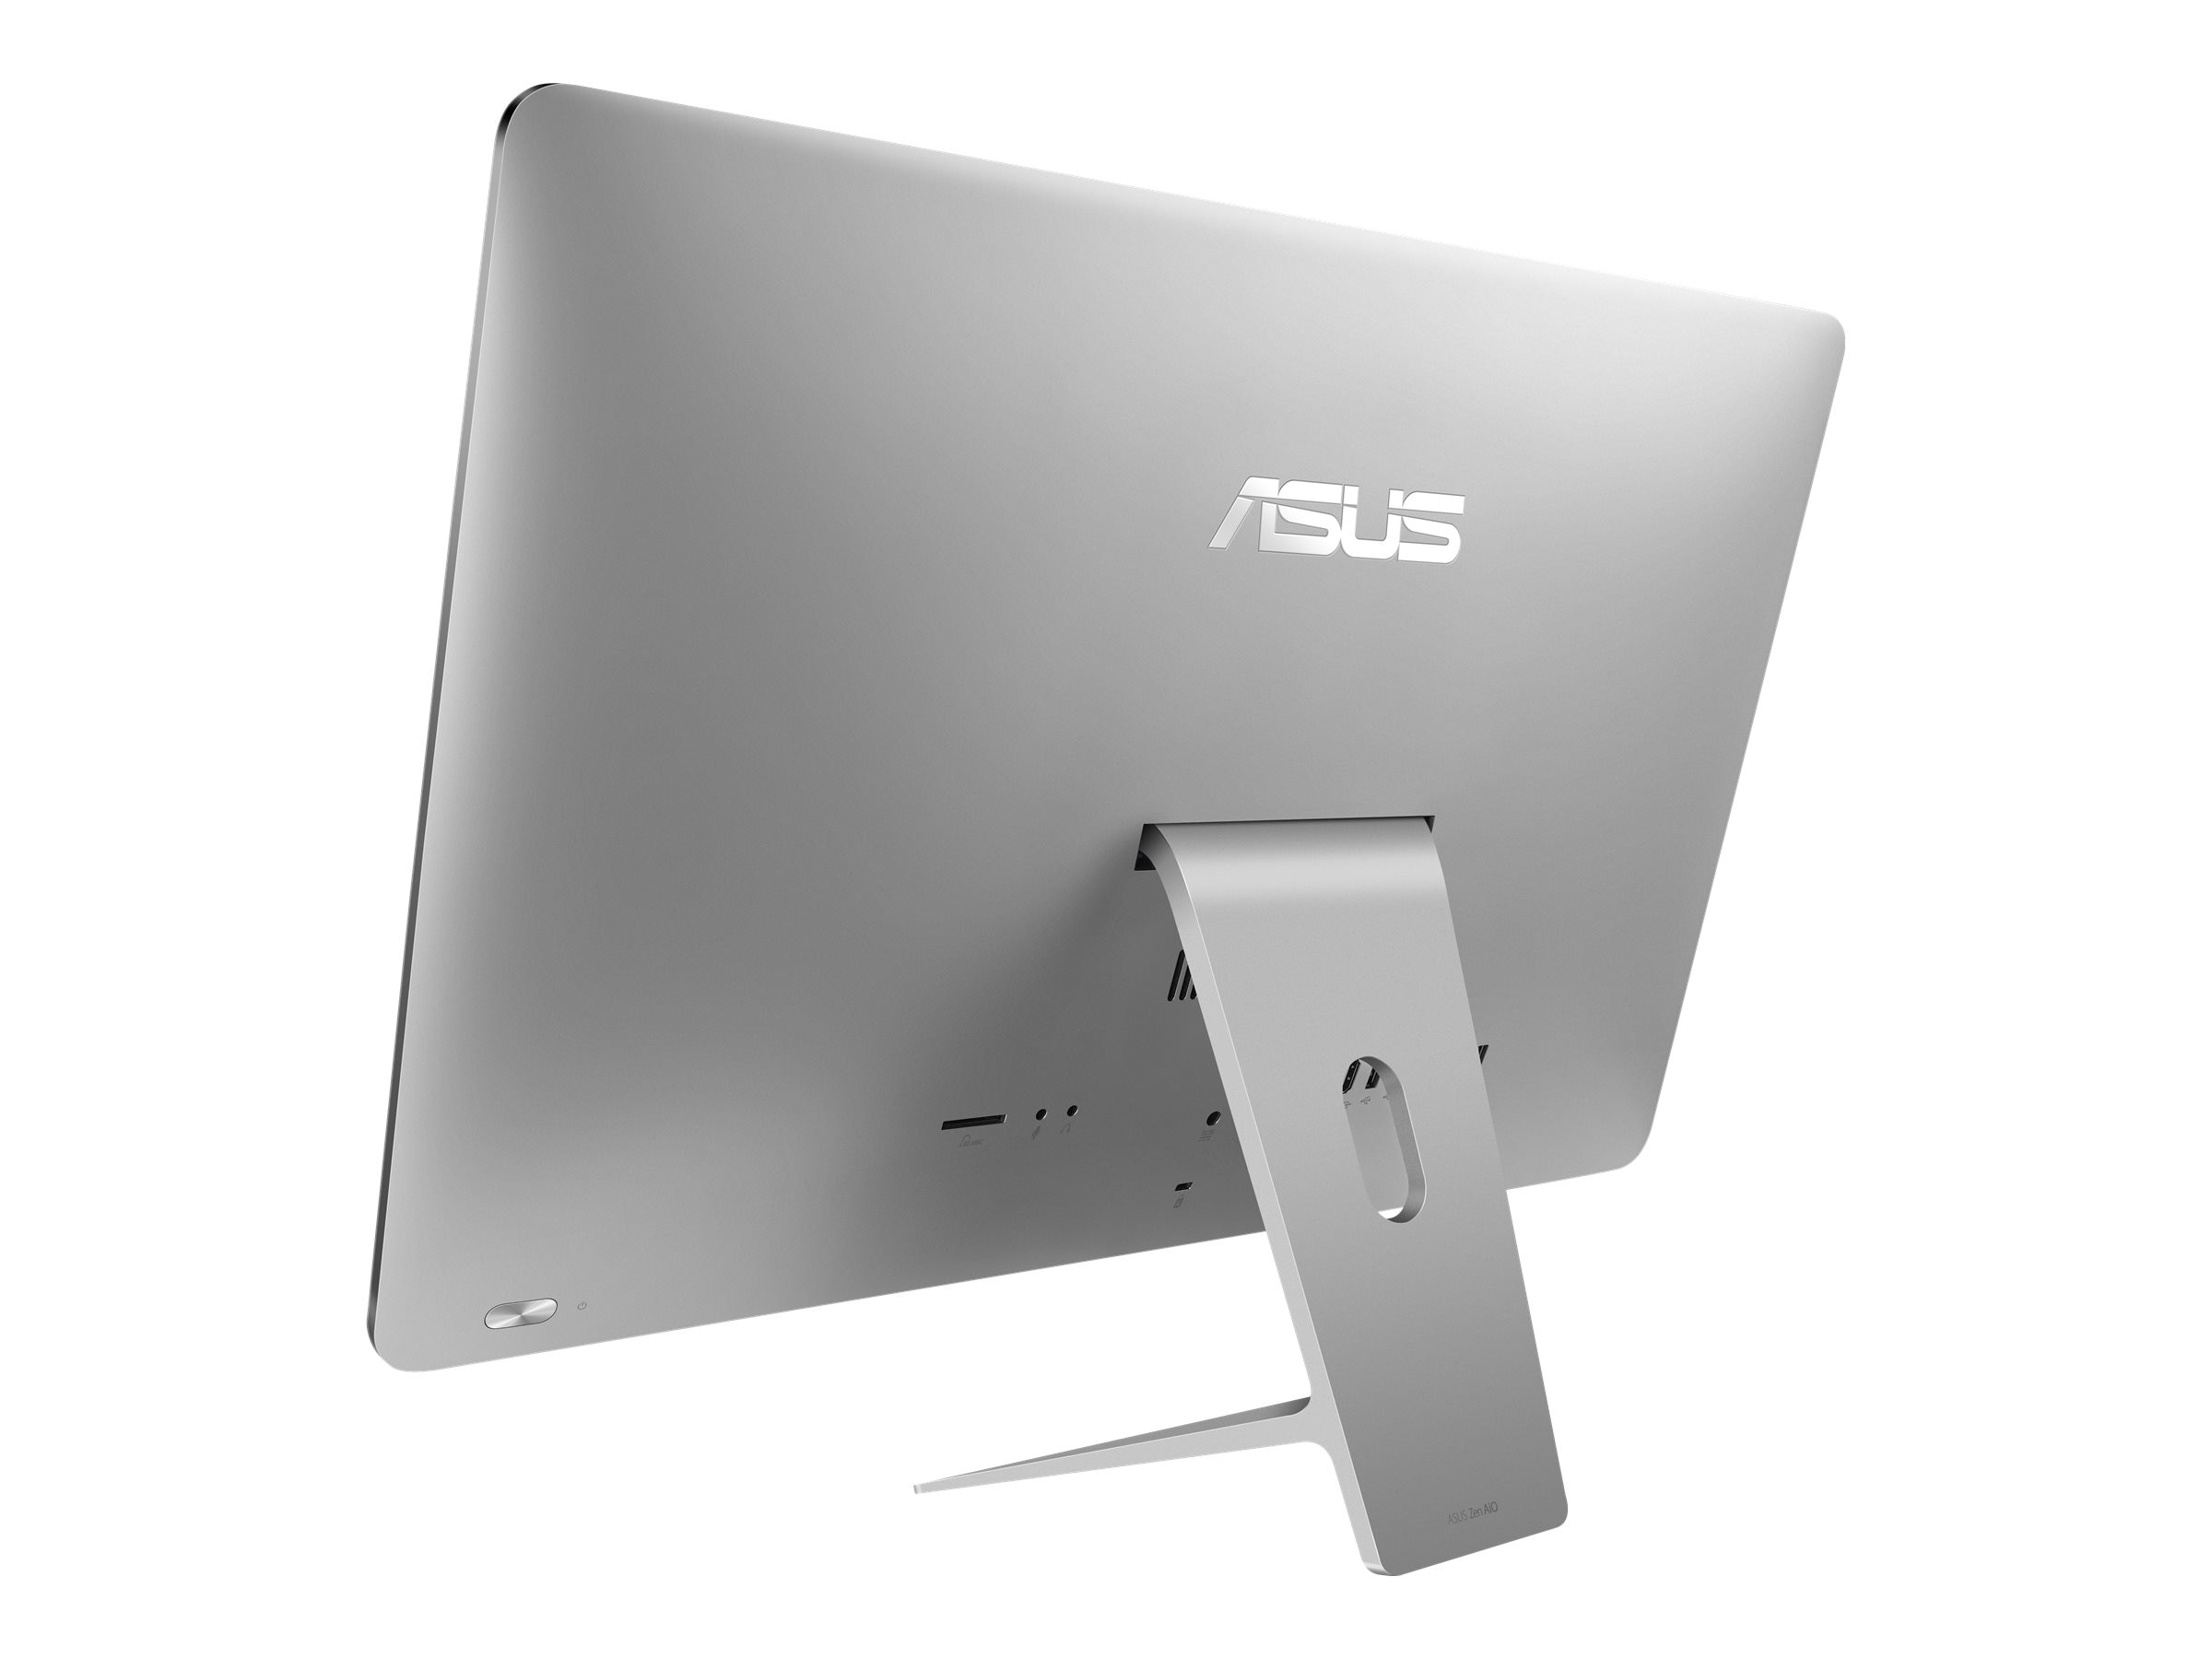 Asus ZN241ICUT-DS51 Image 10